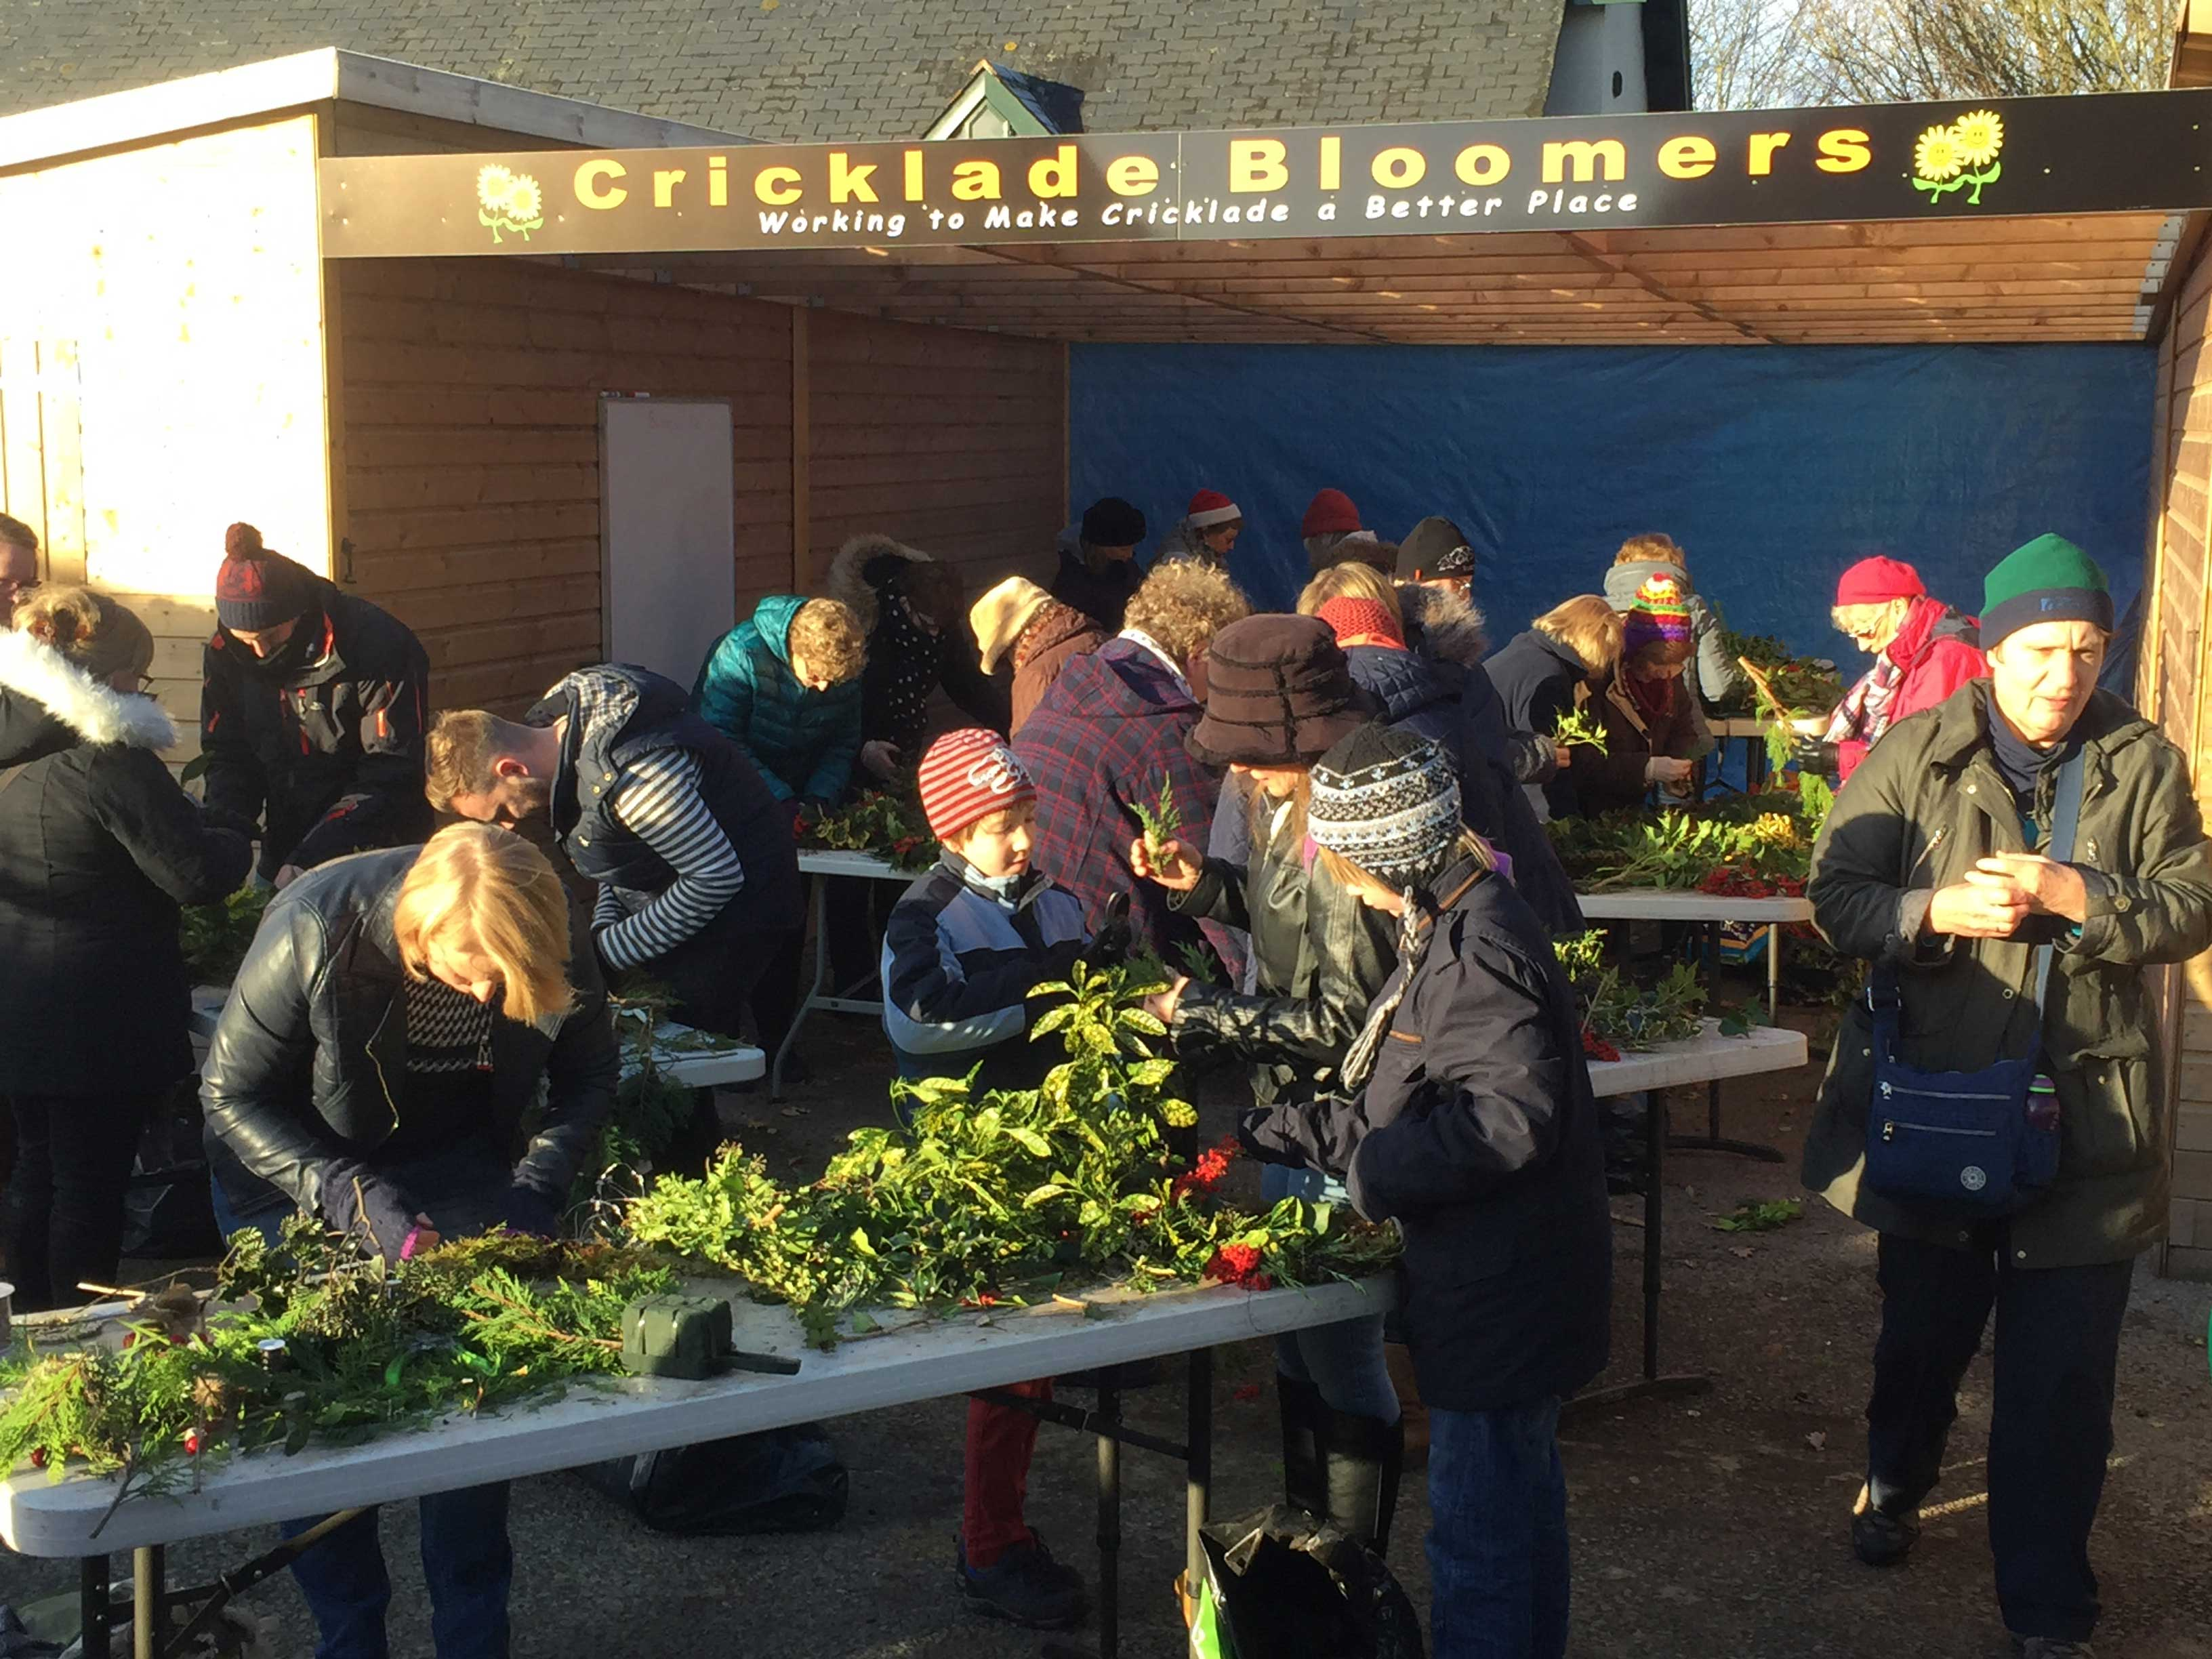 3rd Wreath Making In The Sun Cricklade Bloomers